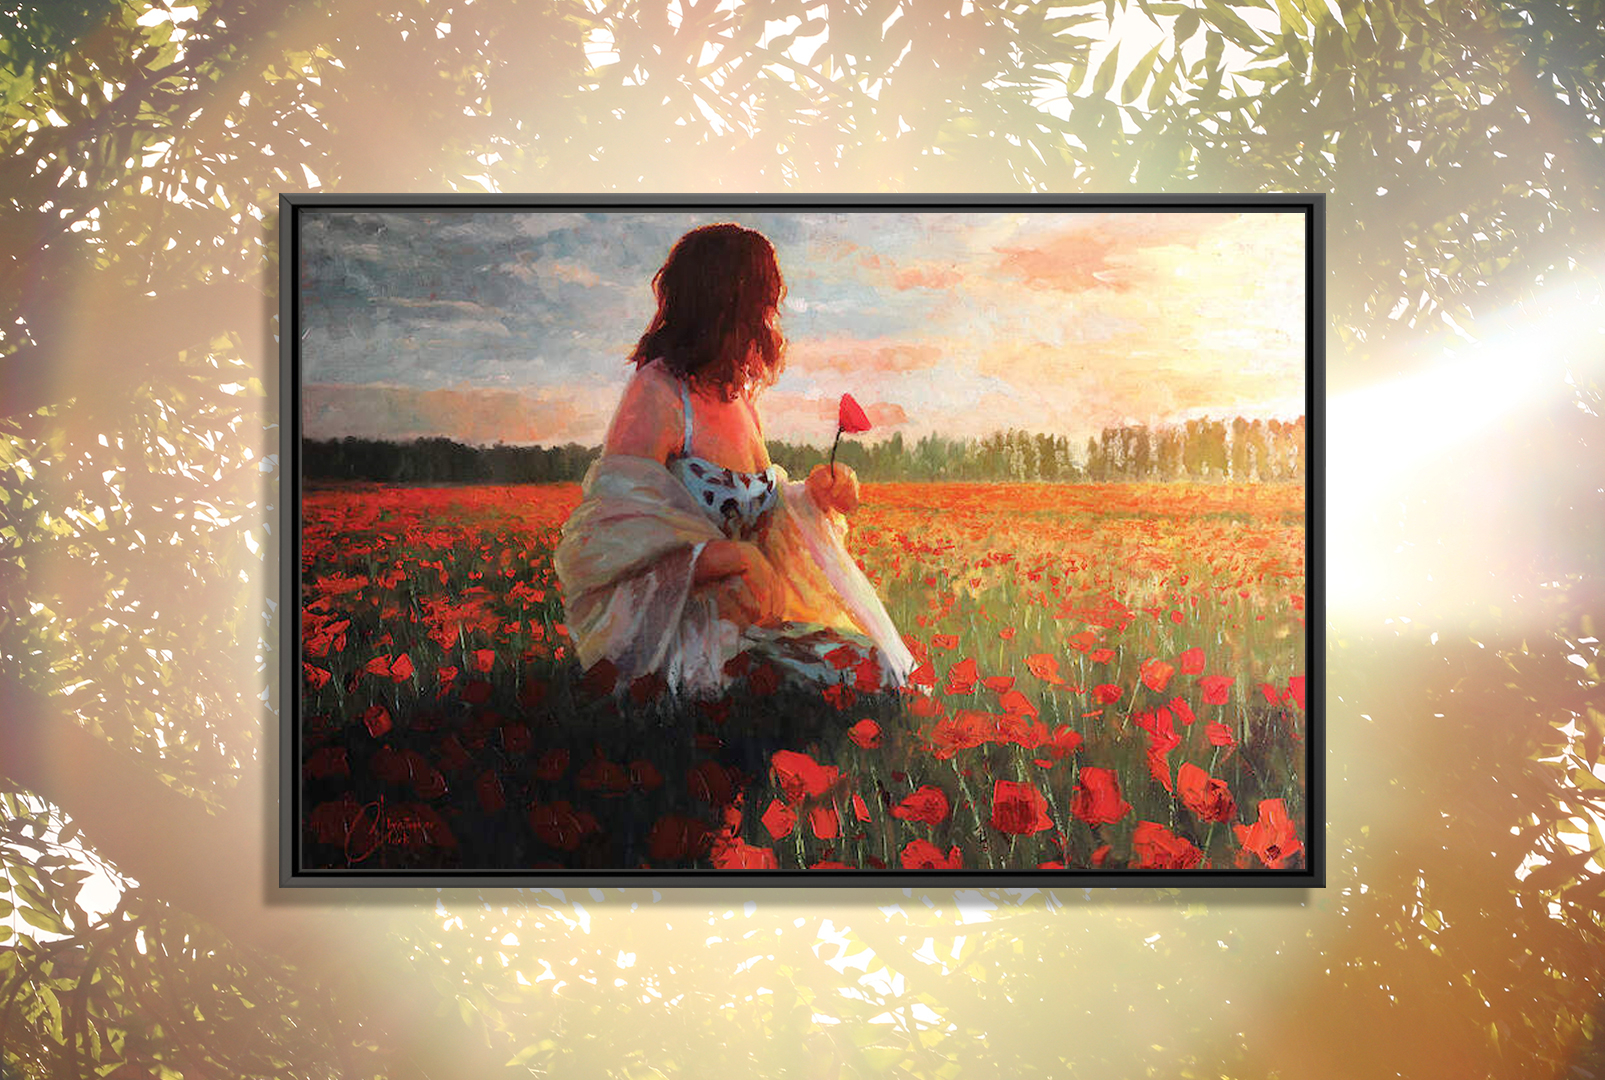 woman wearing a dress with shall sitting in field of poppies at sunset while looking away